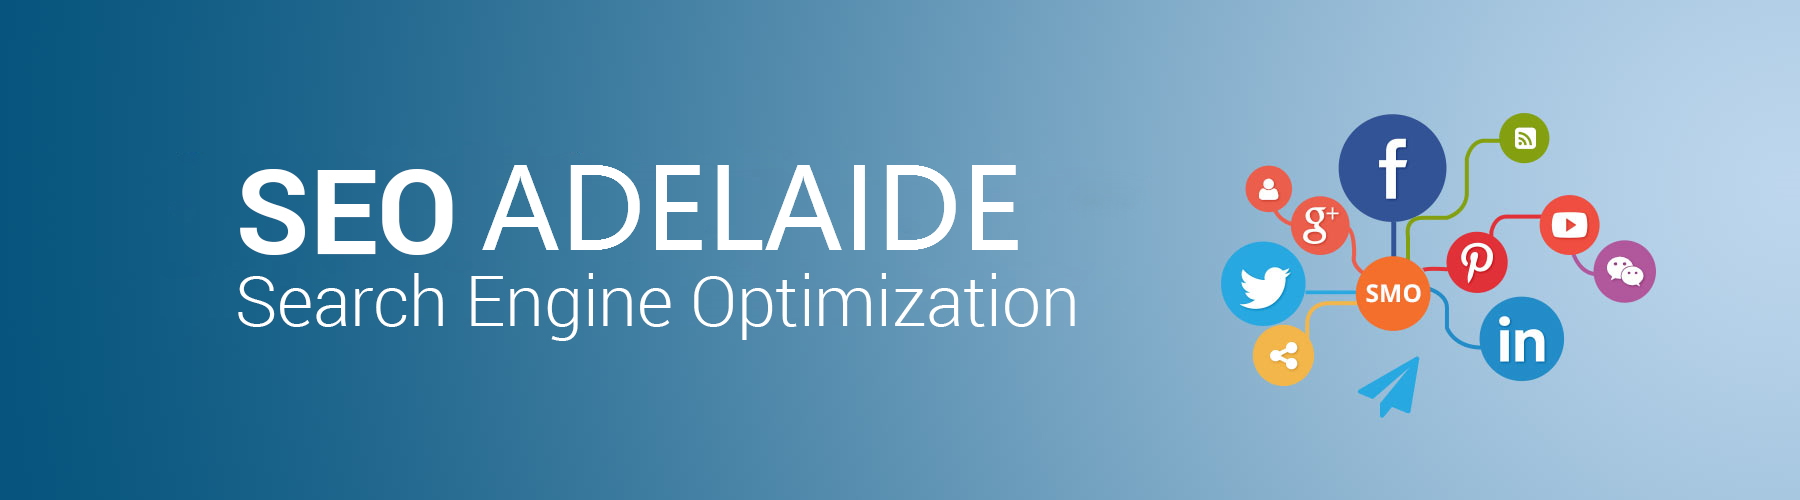 Get SEO Adelaide, get the highest rankings !